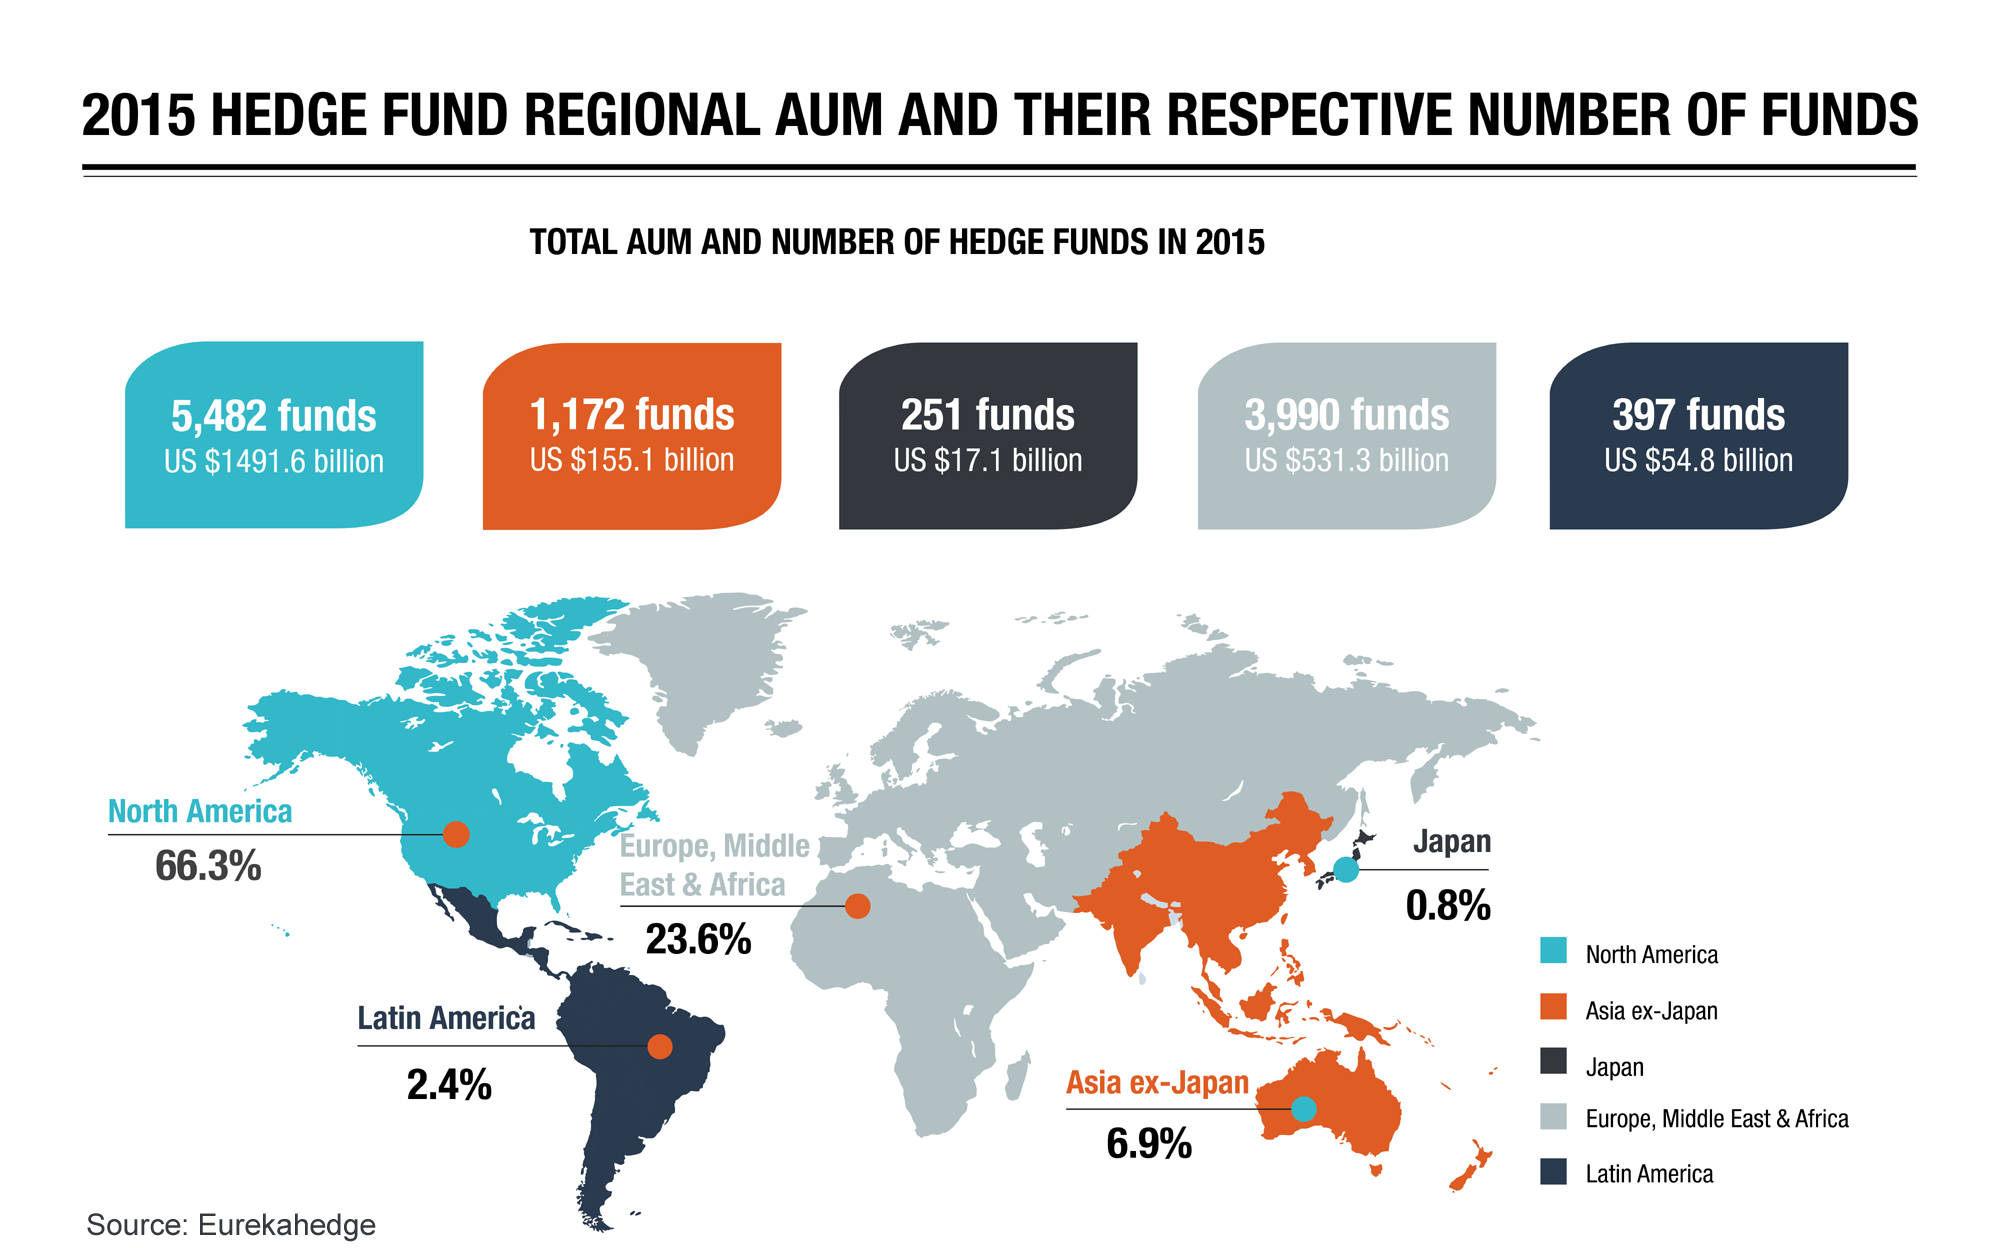 Hedge Funds 2015 Overview Infographic - Total regional AUM and number of funds